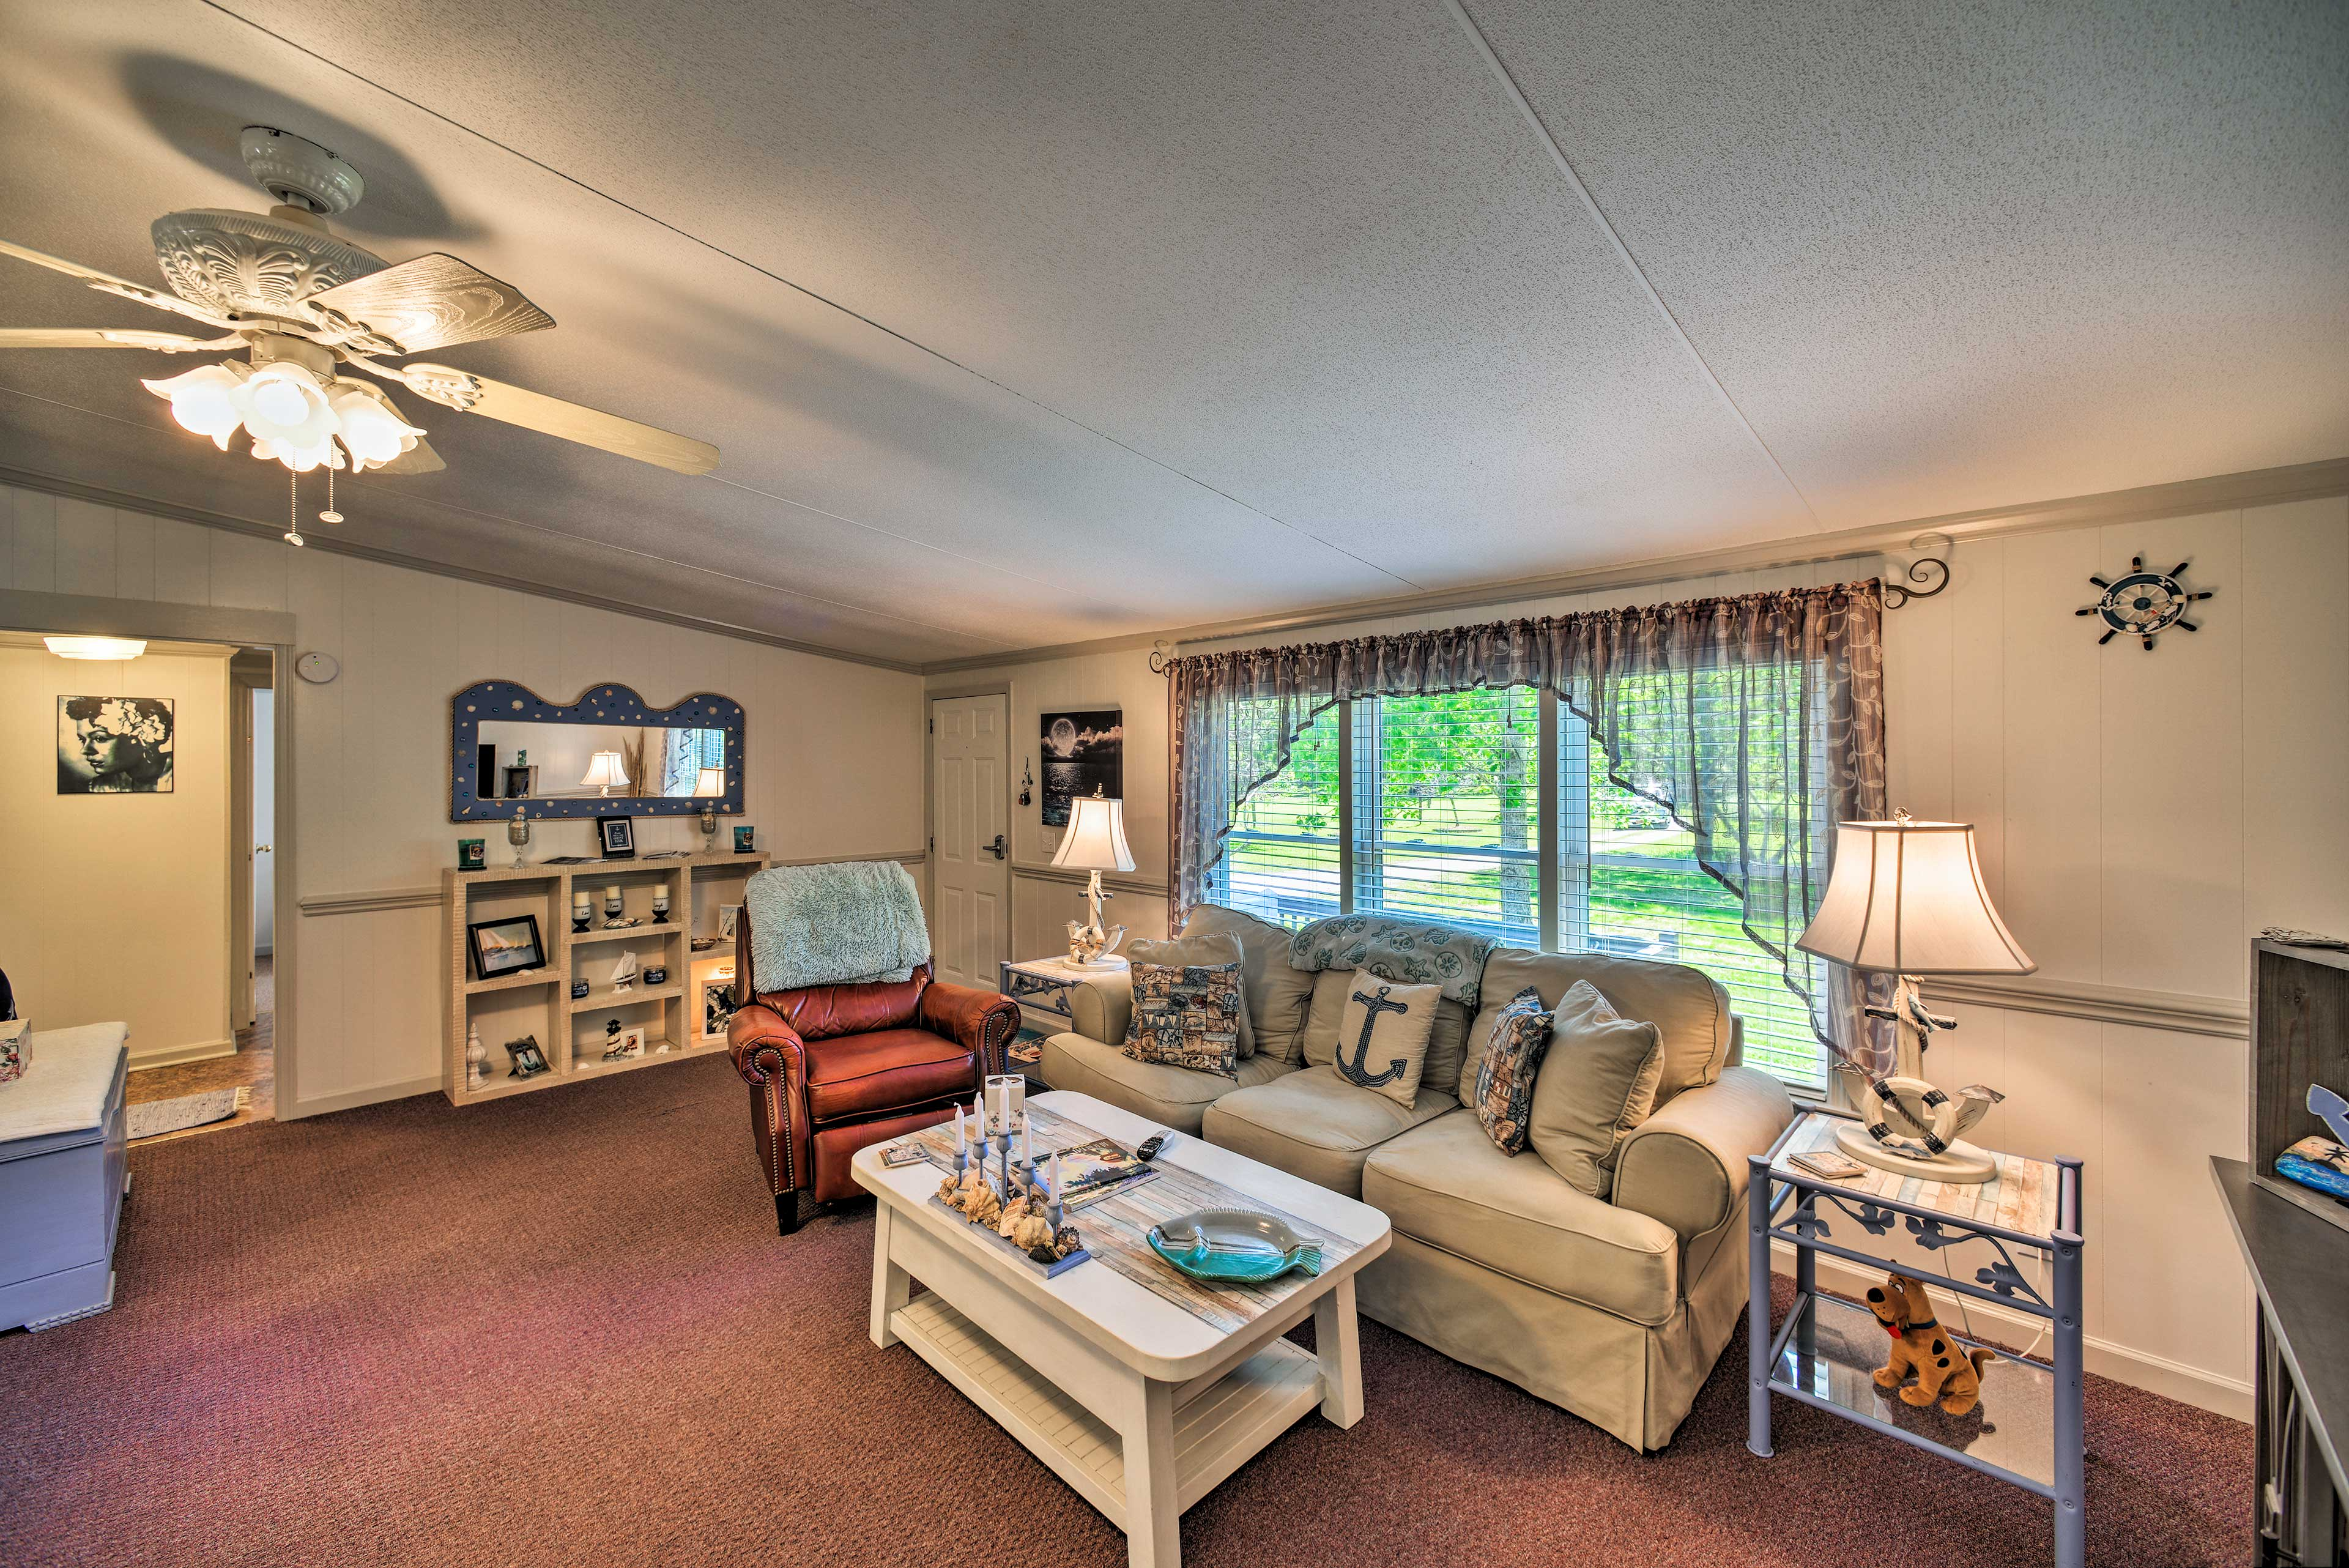 Comfortably sleeping 6, this retreat is ideal for family or friends.